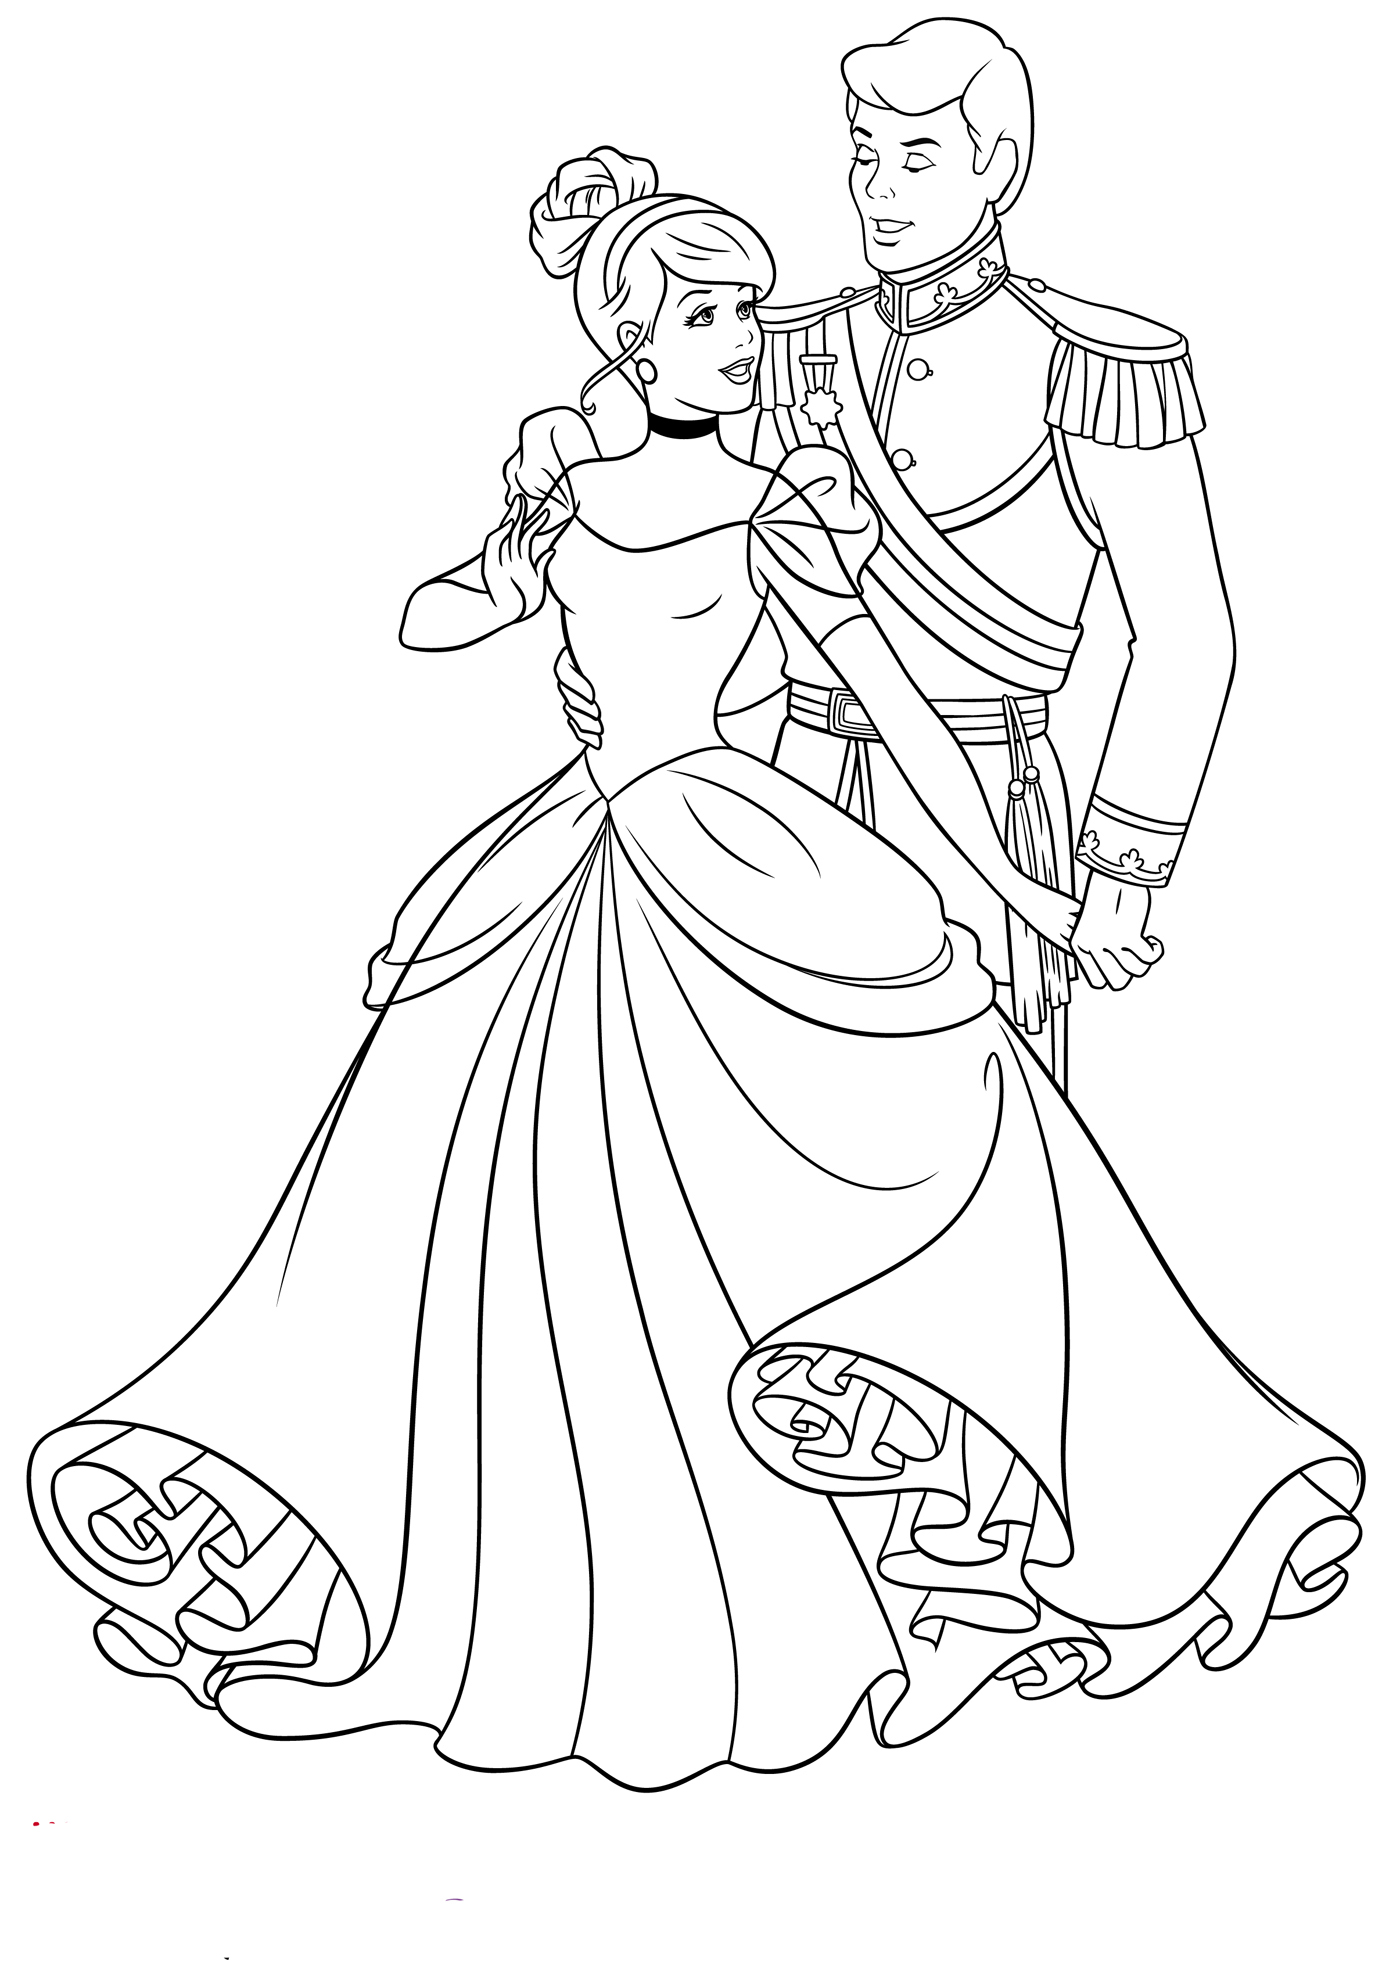 Cinderella Coloring Pages To Download And Print For Free